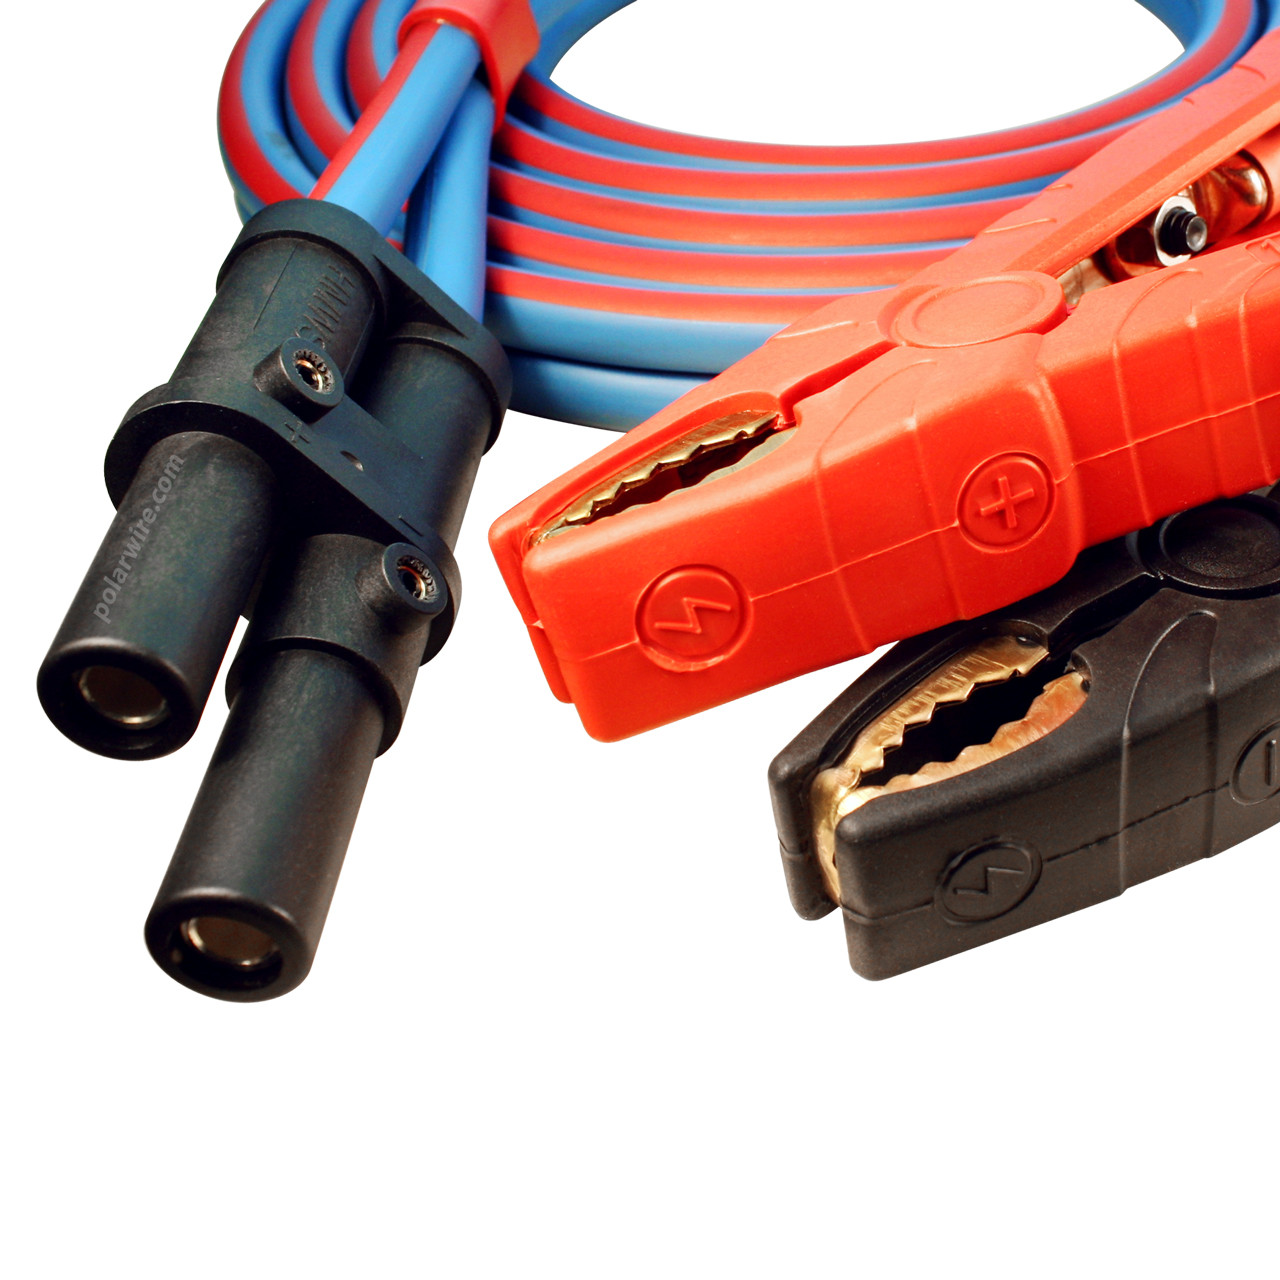 Polar Wire makes the best jumper cables available anywhere! 1/0 gauge, 15 foot J-1283 heavy duty caterpillar jump start cable